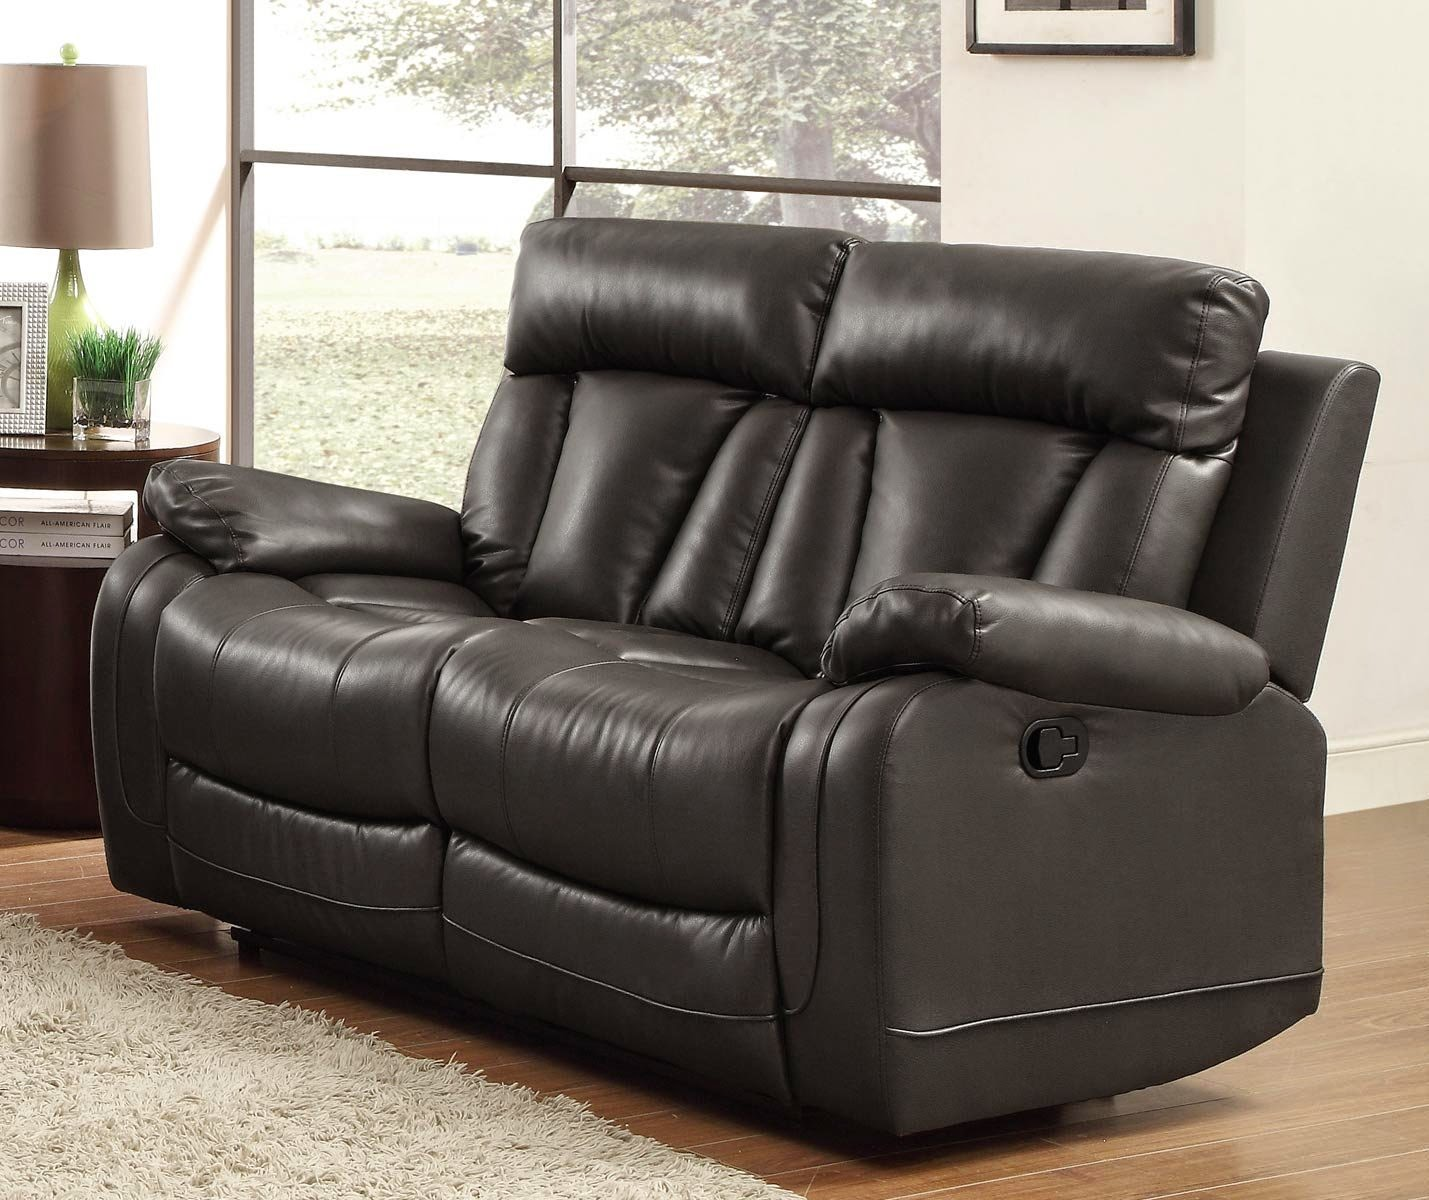 Sofas For Sale Online: Cheap Recliner Sofas For Sale: Black Leather Reclining